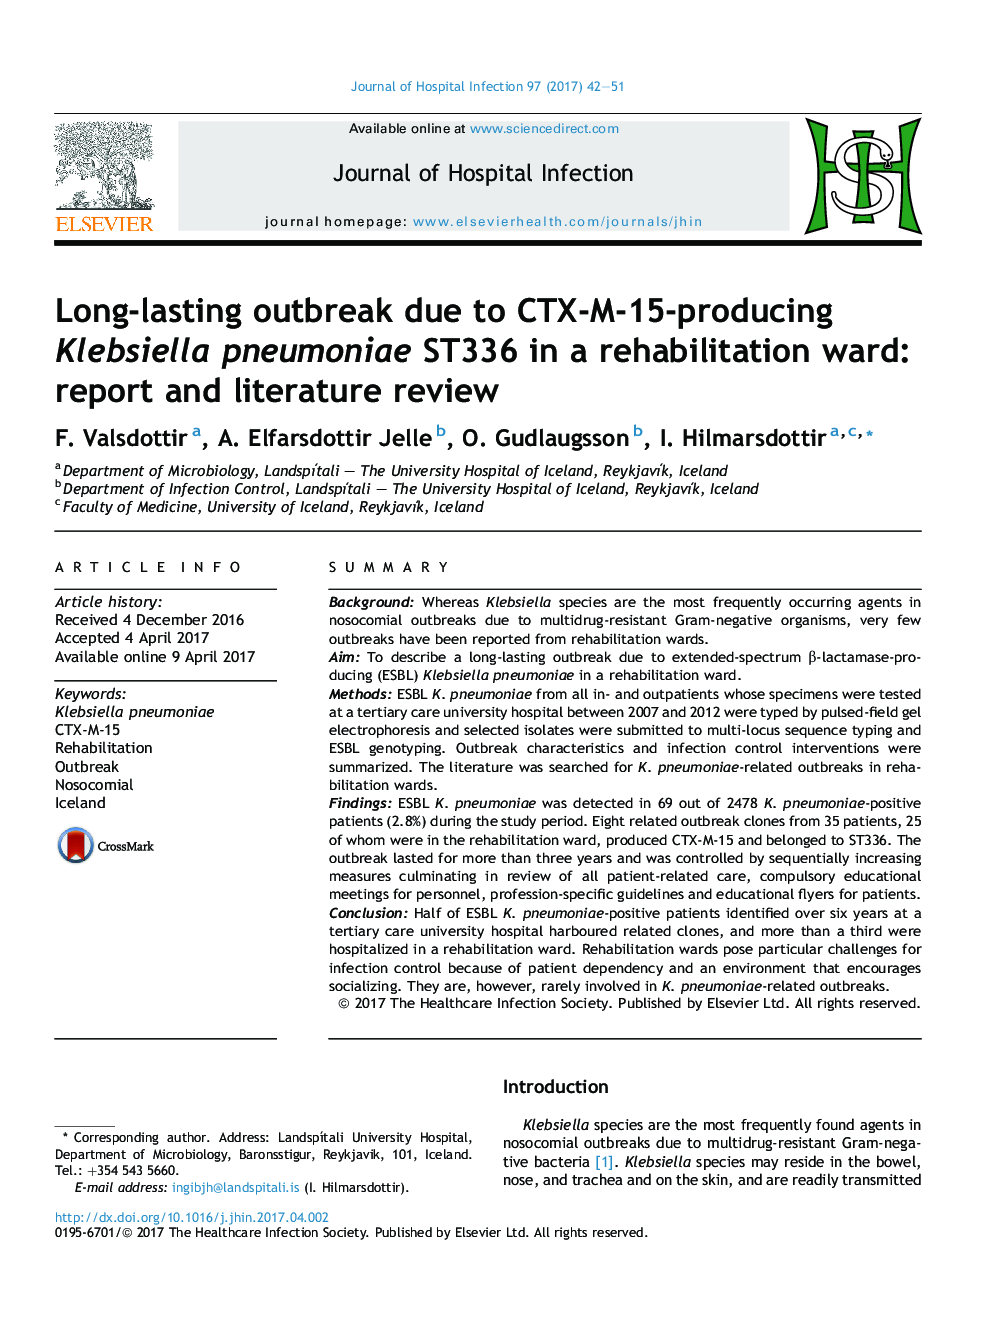 Long-lasting outbreak due to CTX-M-15-producing Klebsiella pneumoniae ST336 in a rehabilitation ward: report and literature review